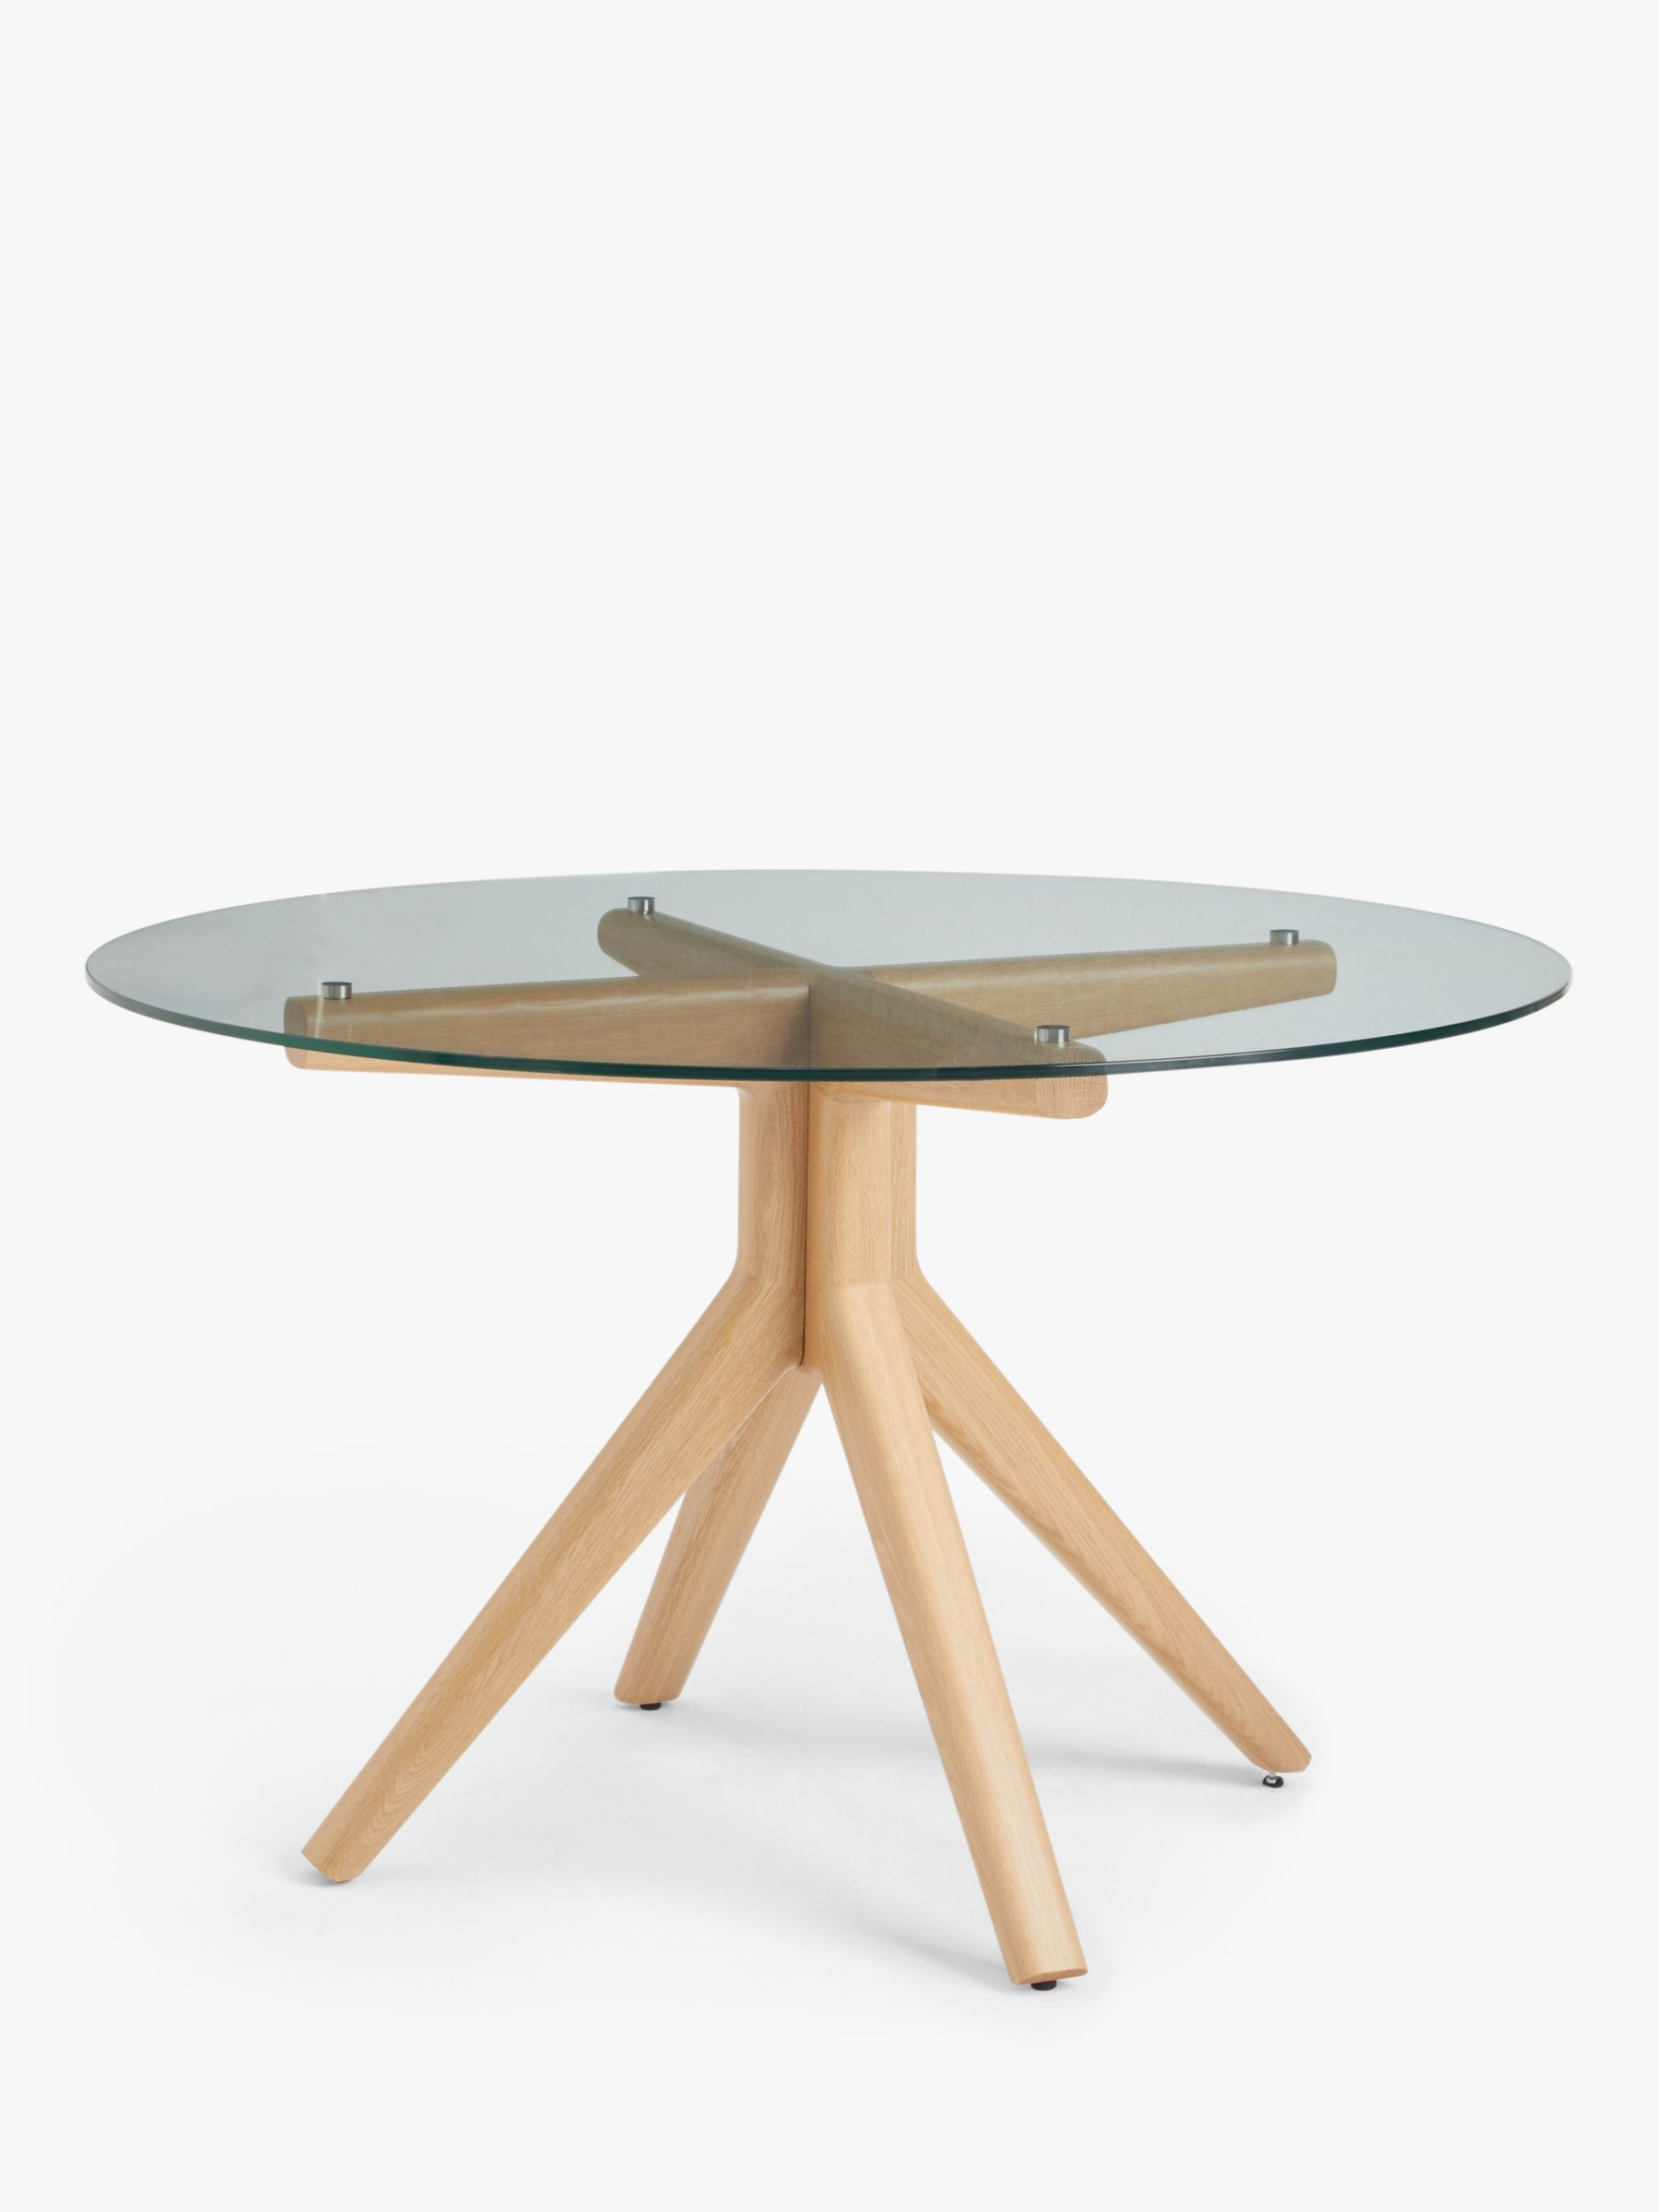 Poise 6 Seater Round Glass Dining Table, Round Glass Dining Table With Pedestal Base